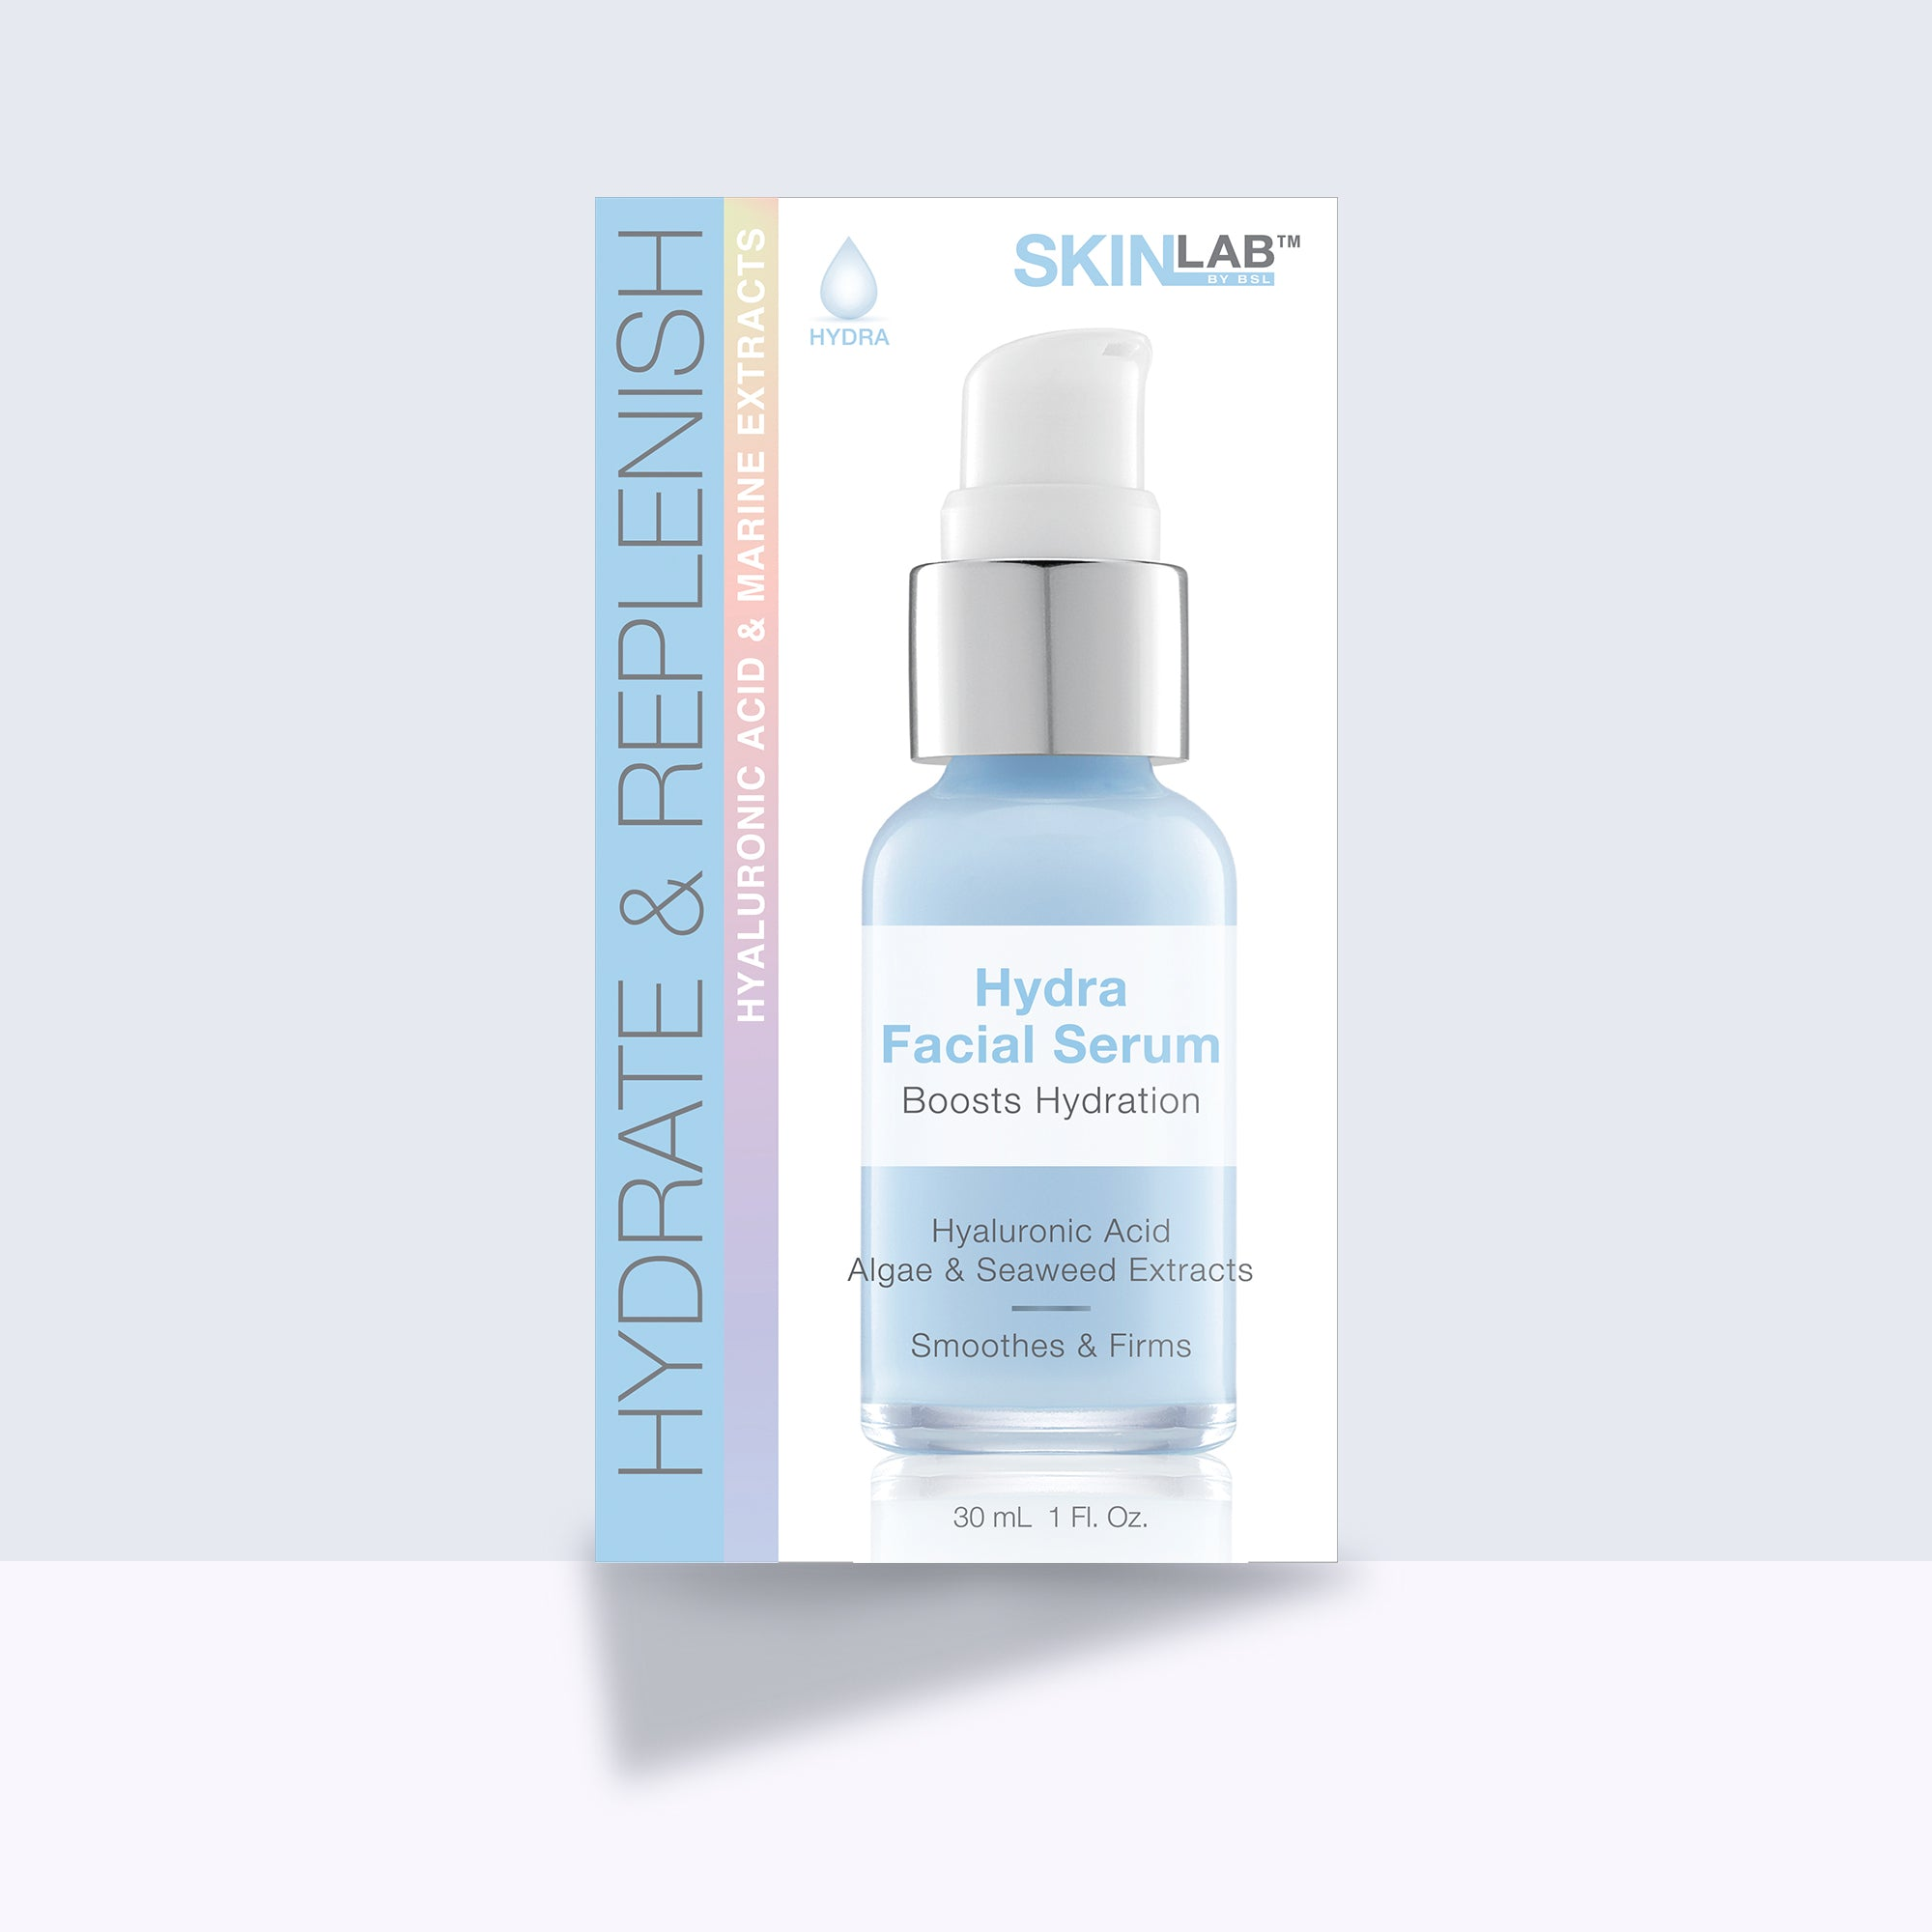 Hydrate & Replenish Hydra Facial Serum